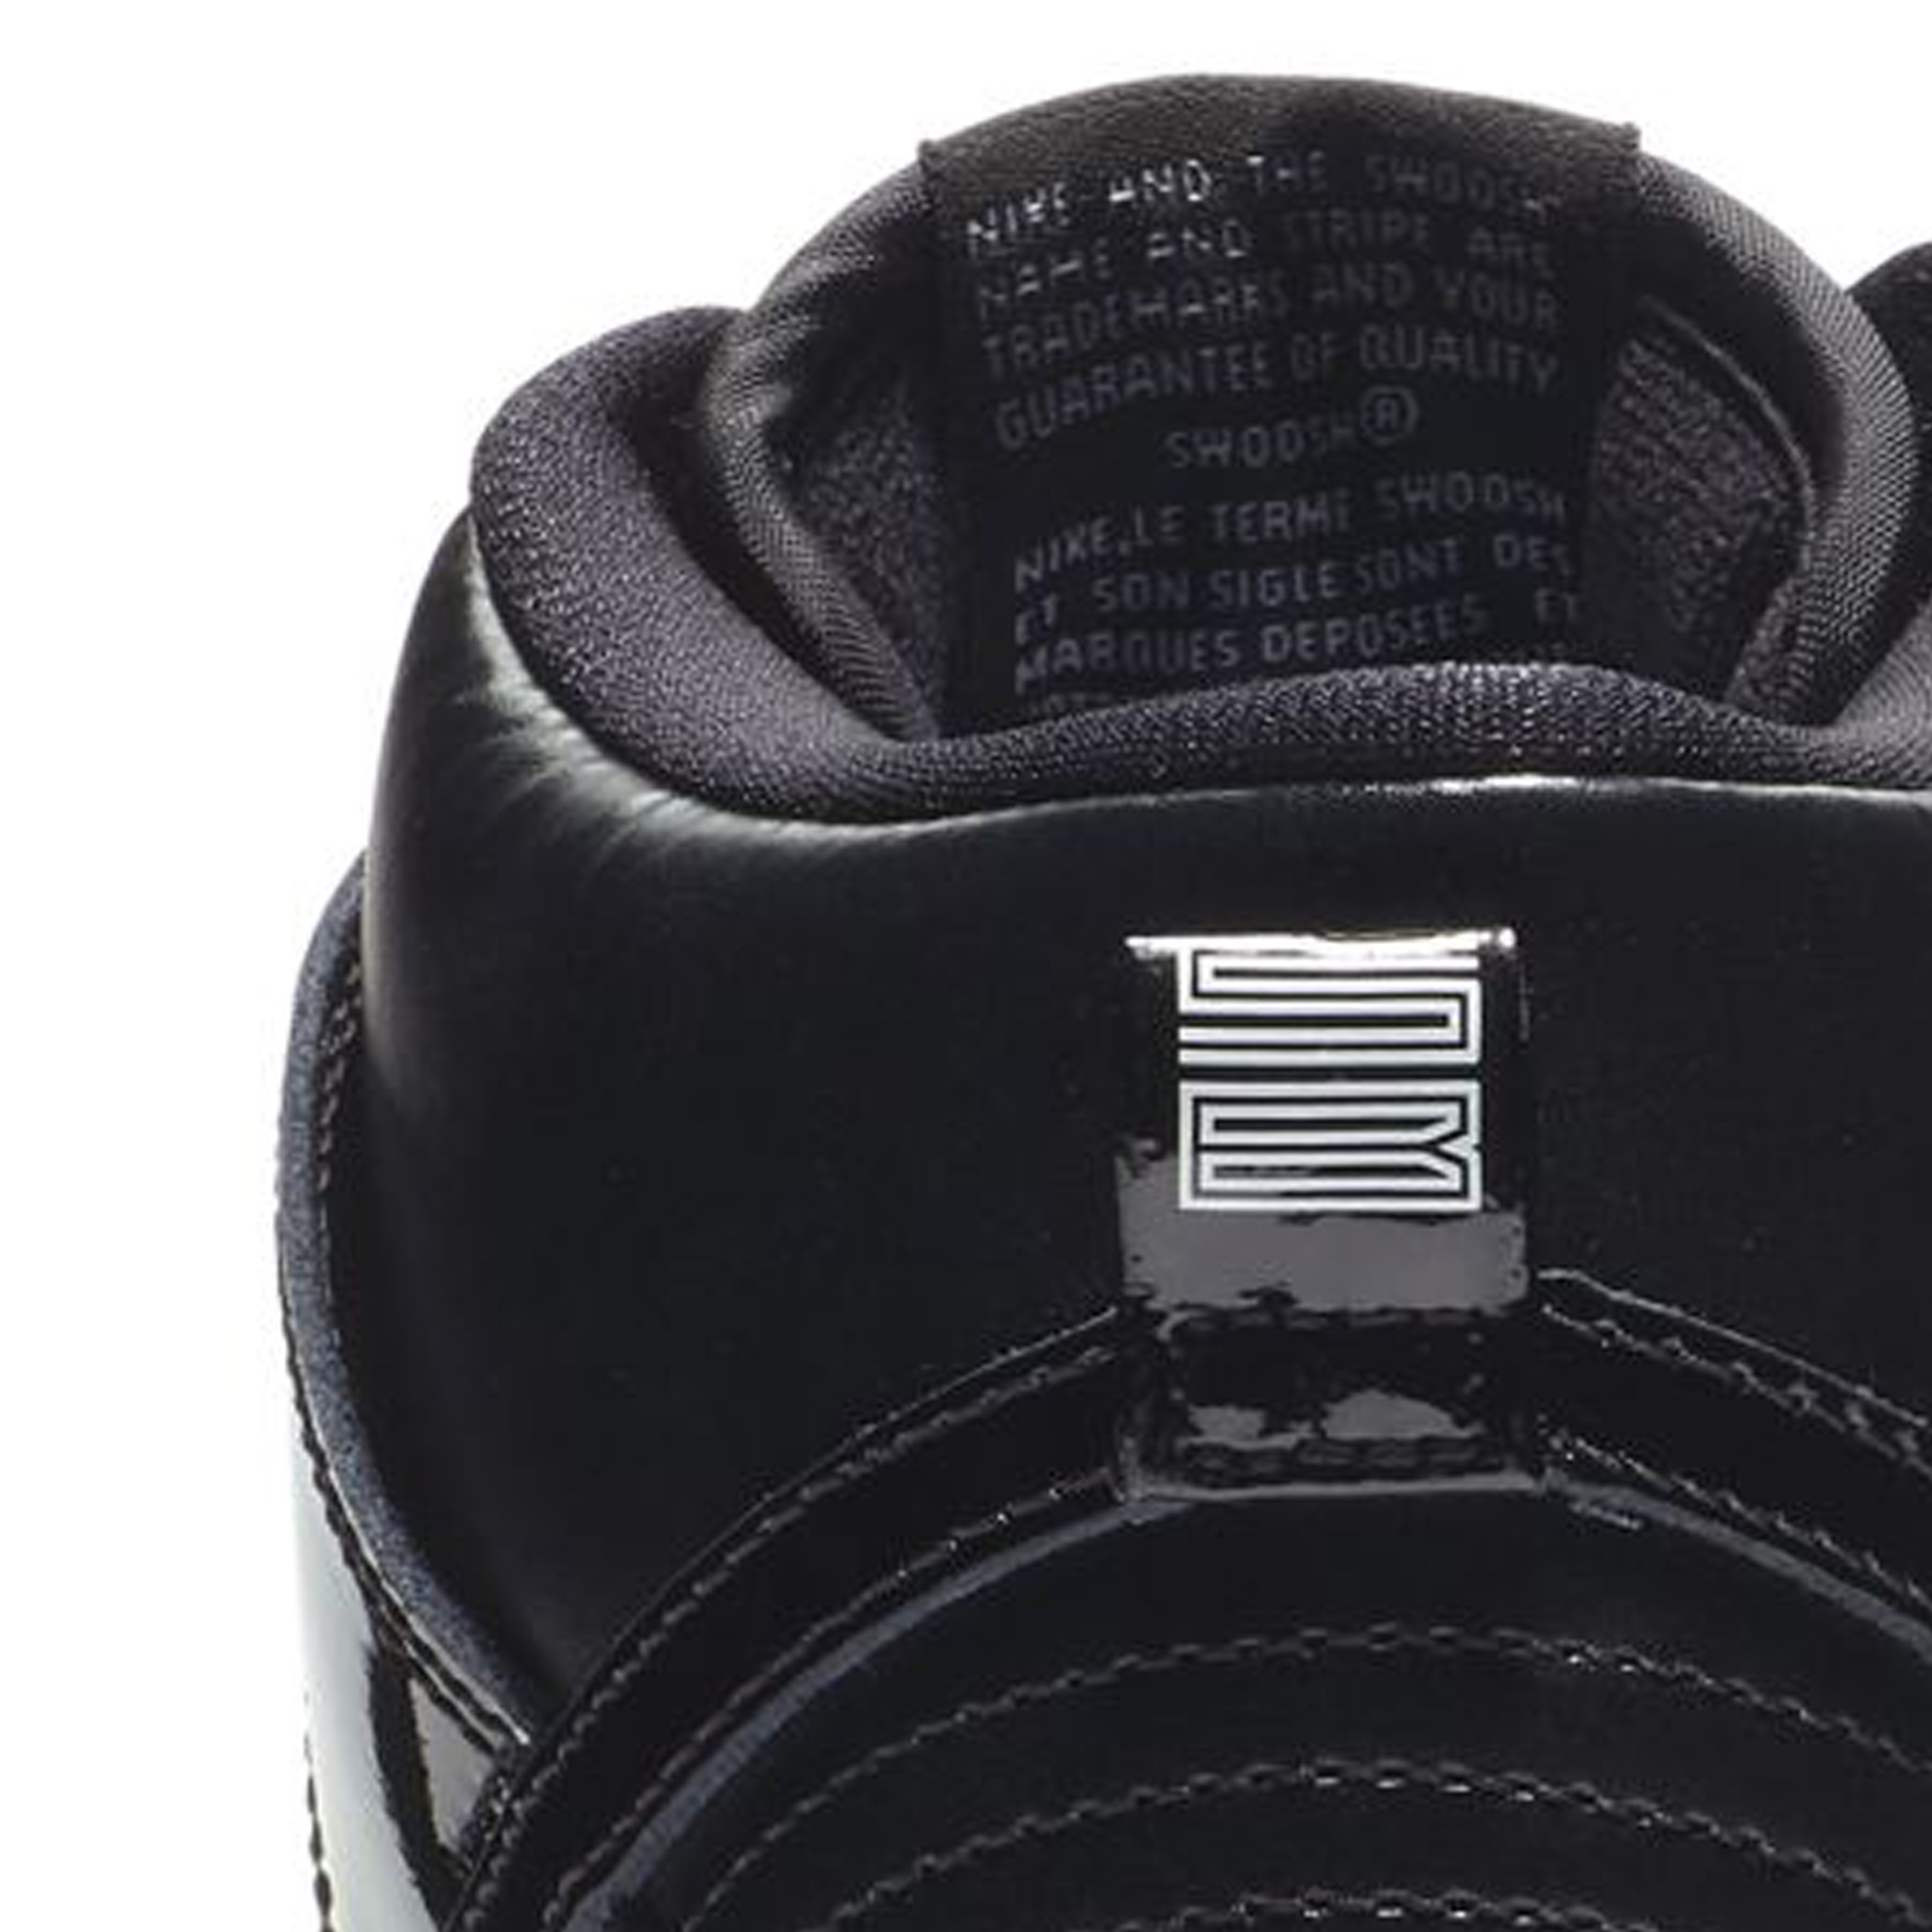 newest d8c43 58997 Nike SB Pays Tribute to the Air Jordan 11 'Bred' - WearTesters